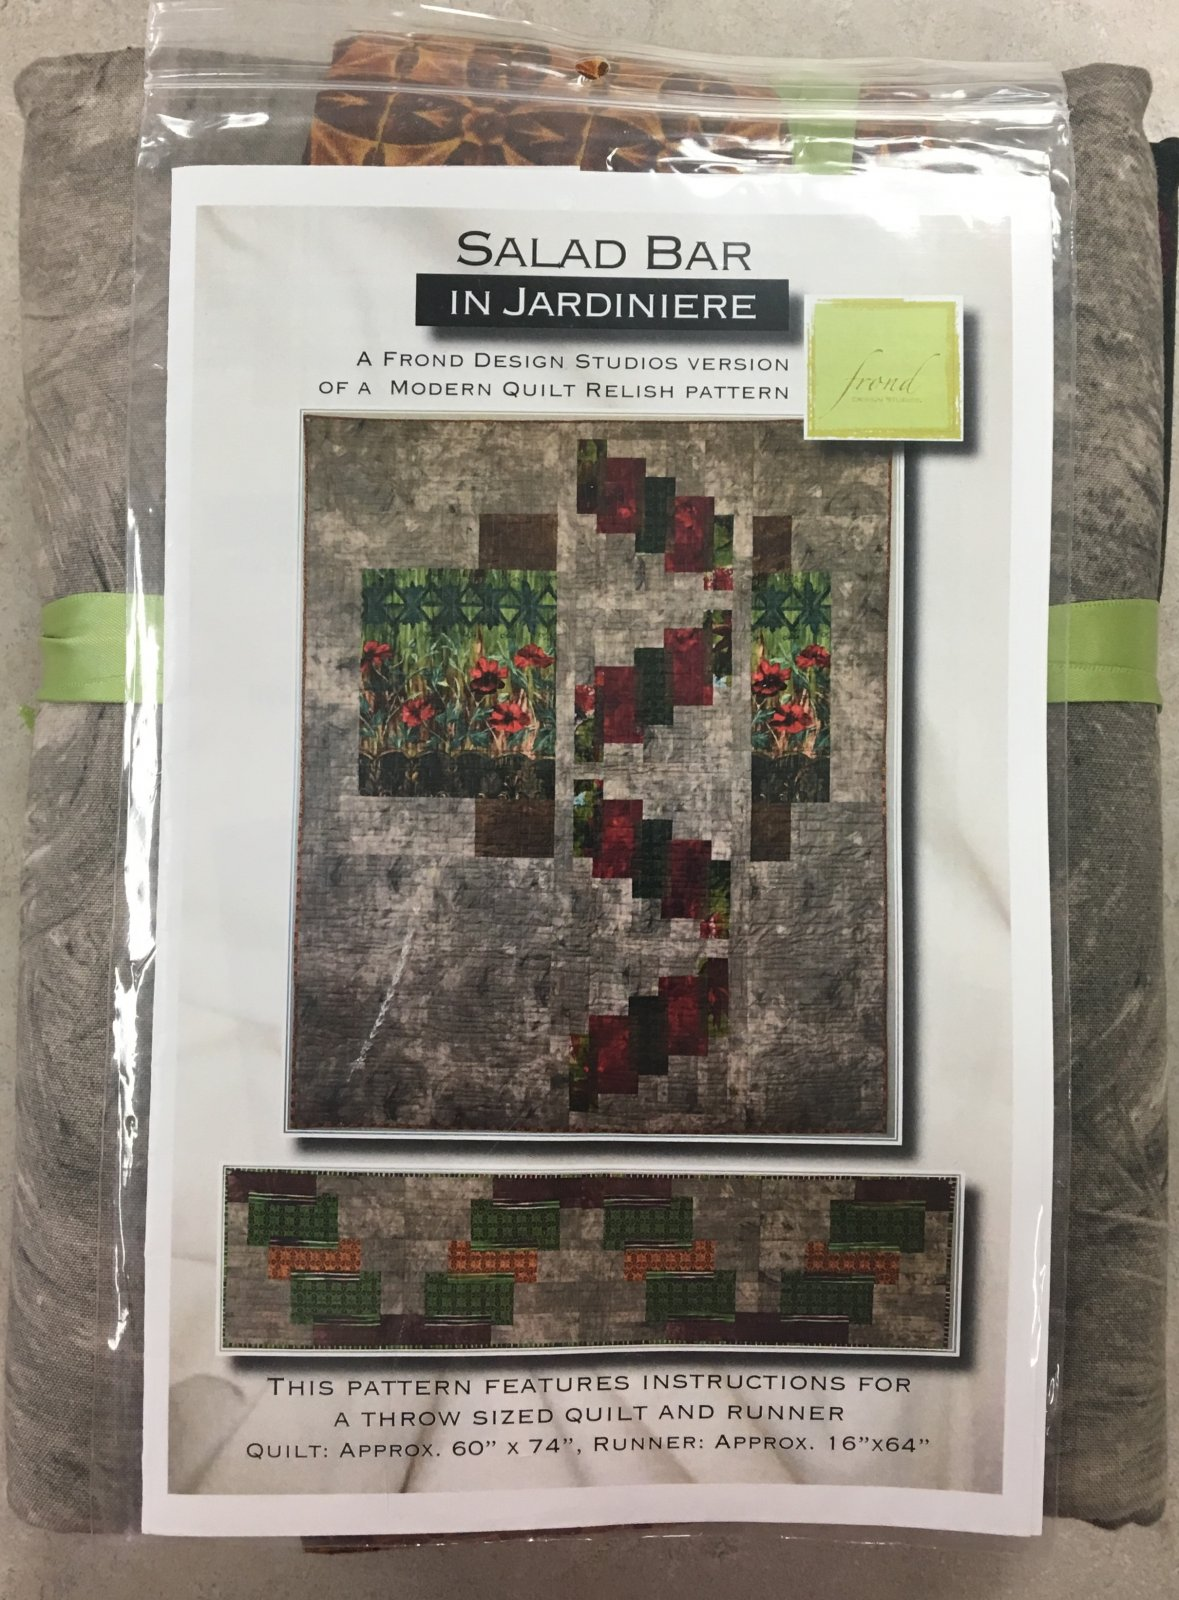 Salad Bar in Jardiniere Quilt and Table Runner Kit by Frond Design Studios